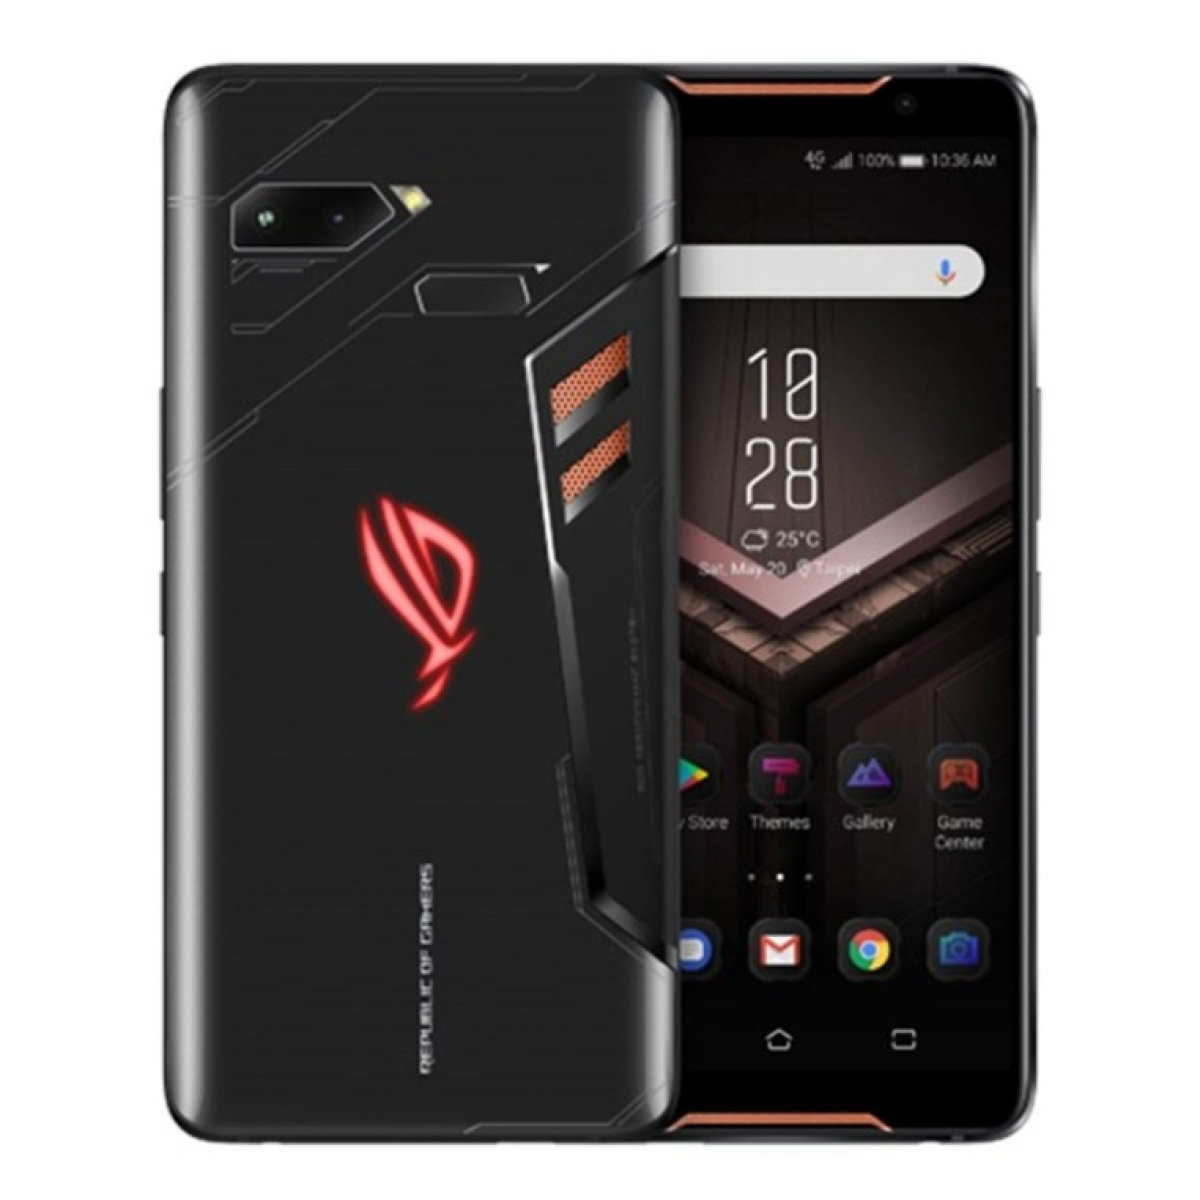 With ROG Phone 2, ASUS plans to enter gaming segment